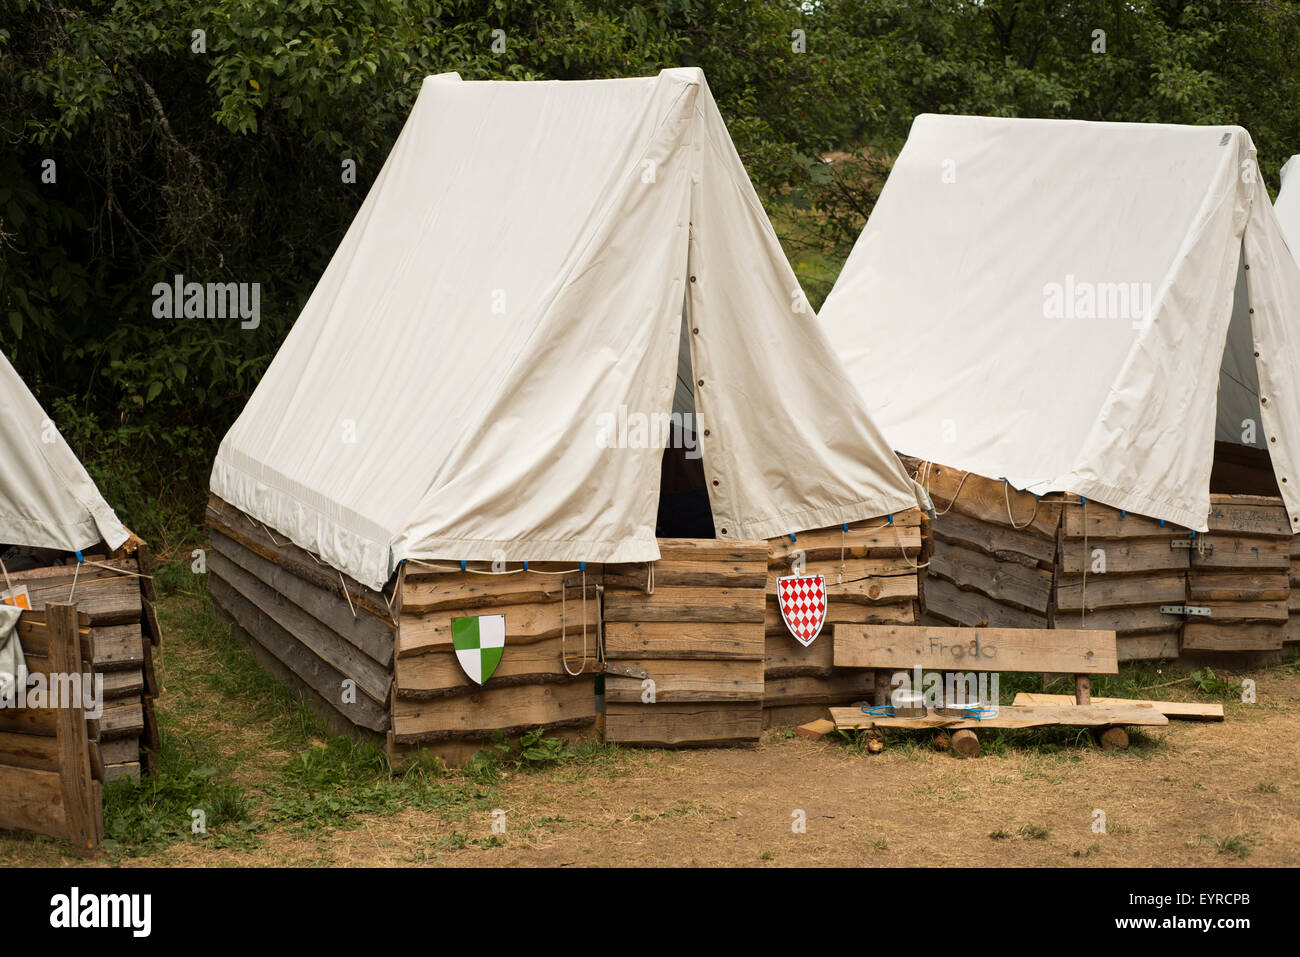 Boys Scout Campground, summer camp, tents, Roughing camping